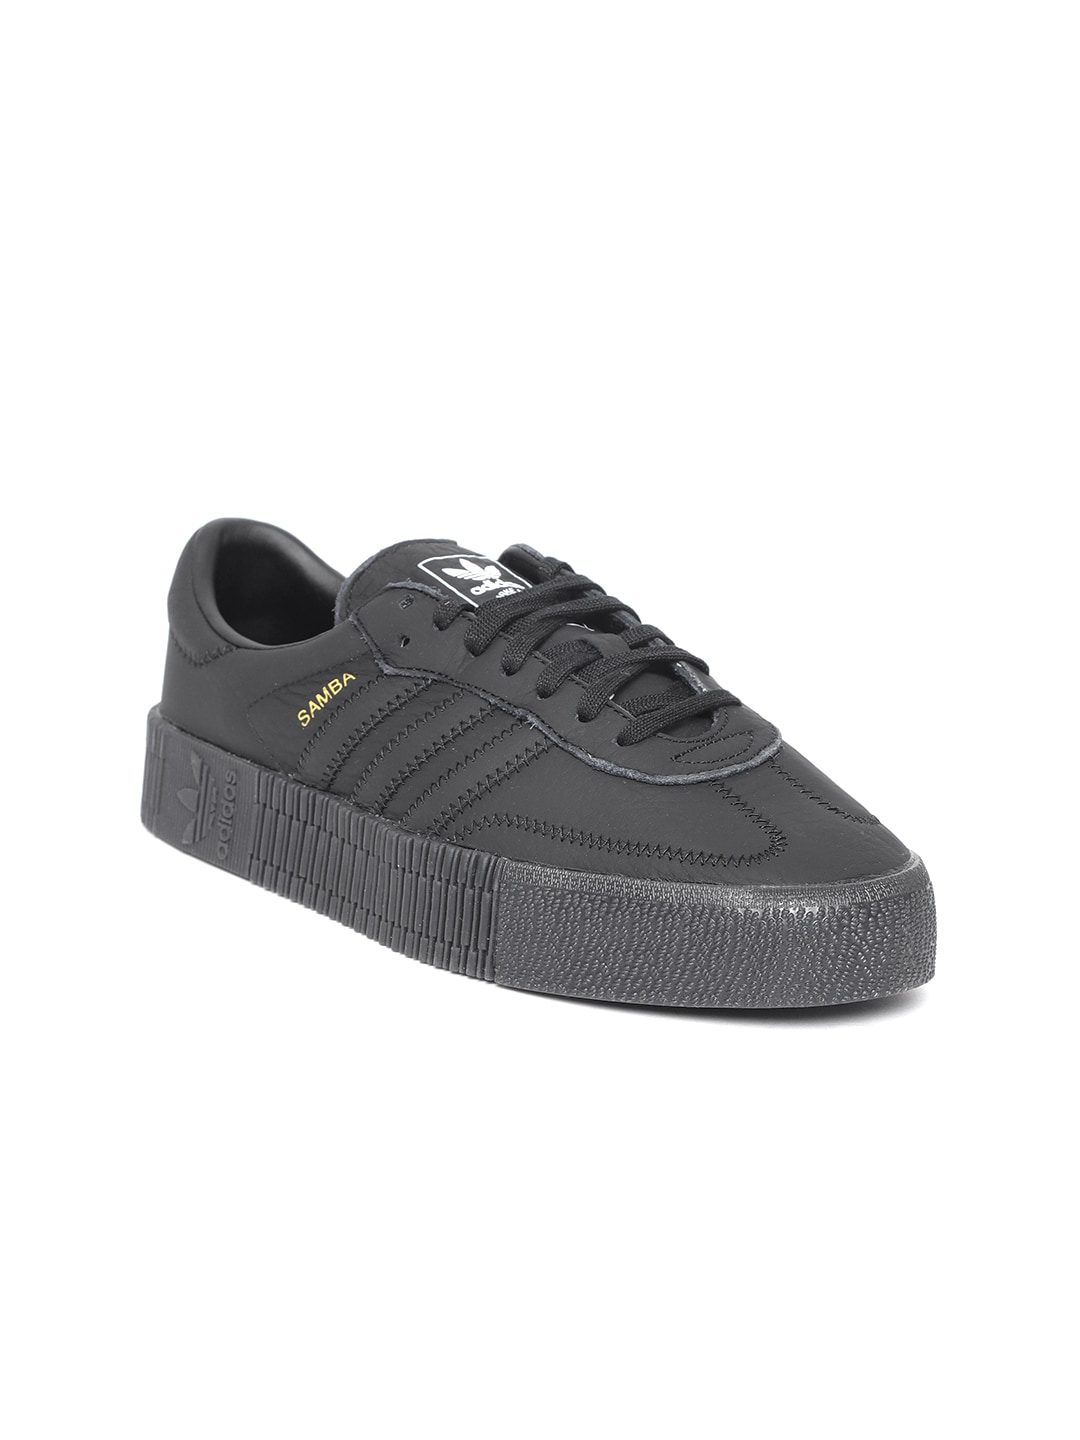 8f37d6134 Shoe Adidas Women - Buy Shoe Adidas Women online in India